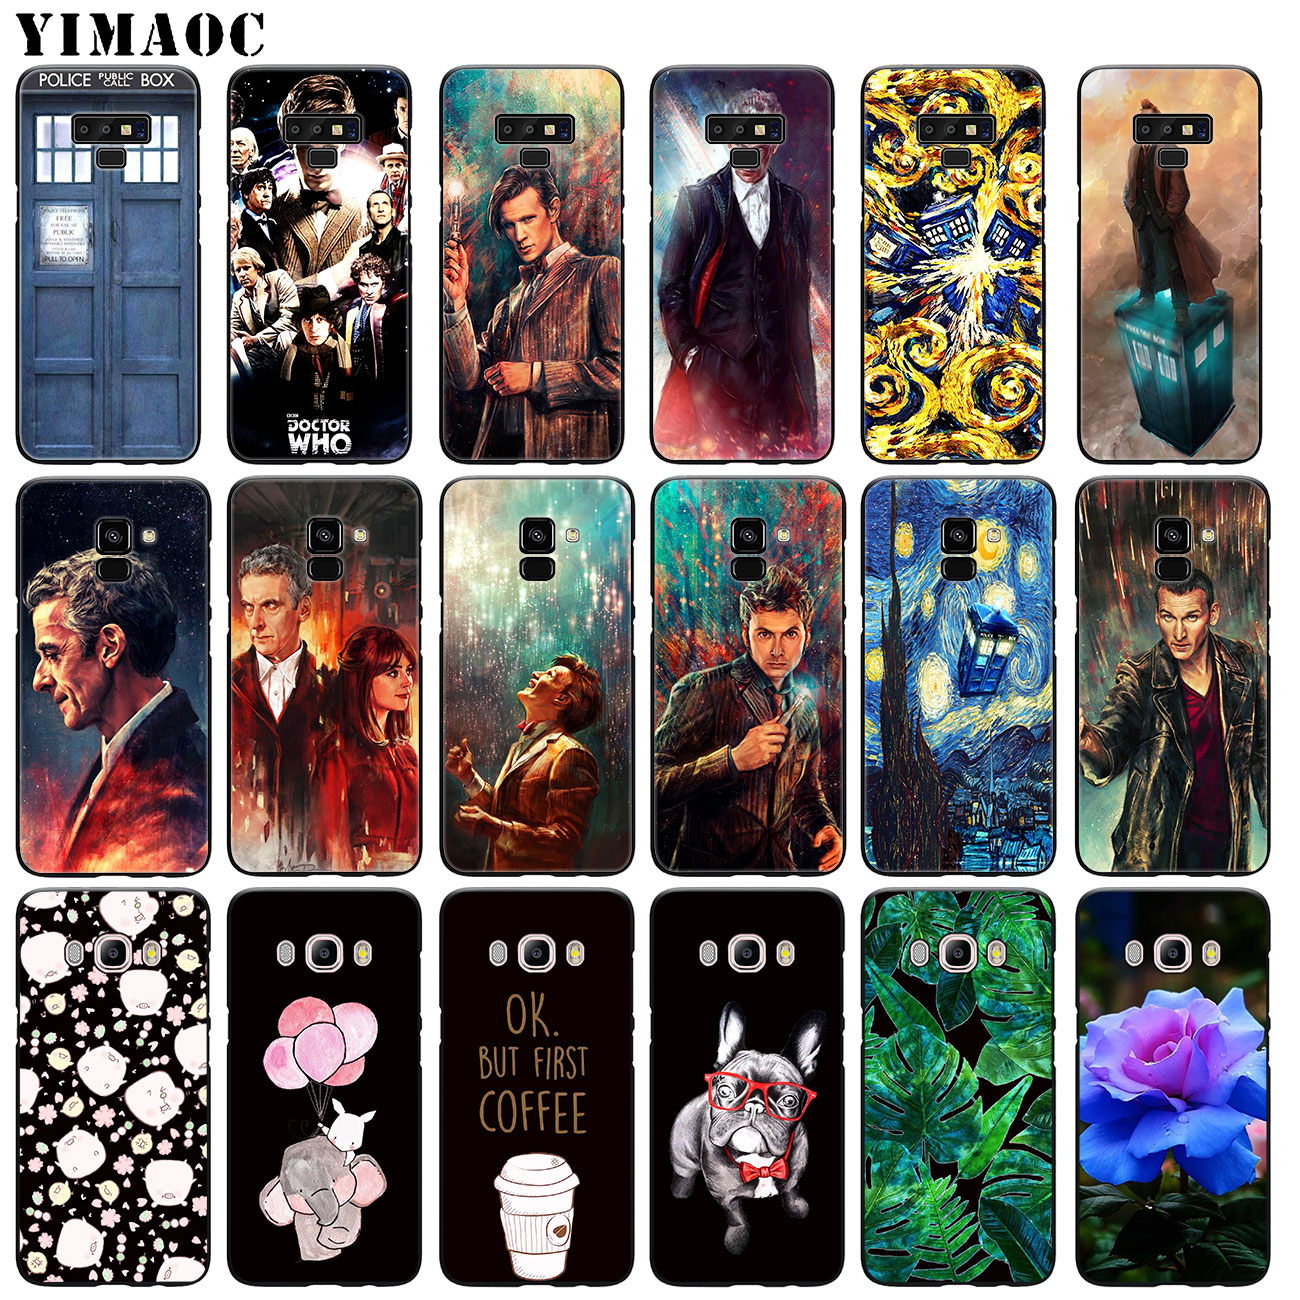 Cellphones & Telecommunications Phone Bags & Cases Industrious Yimaoc Tardis Box Doctor Who Soft Silicone Case For Samsung Galaxy A6 Plus A9 A8 A7 2018 A3 A5 2016 2017 Black Note 9 8 Cover Attractive Appearance